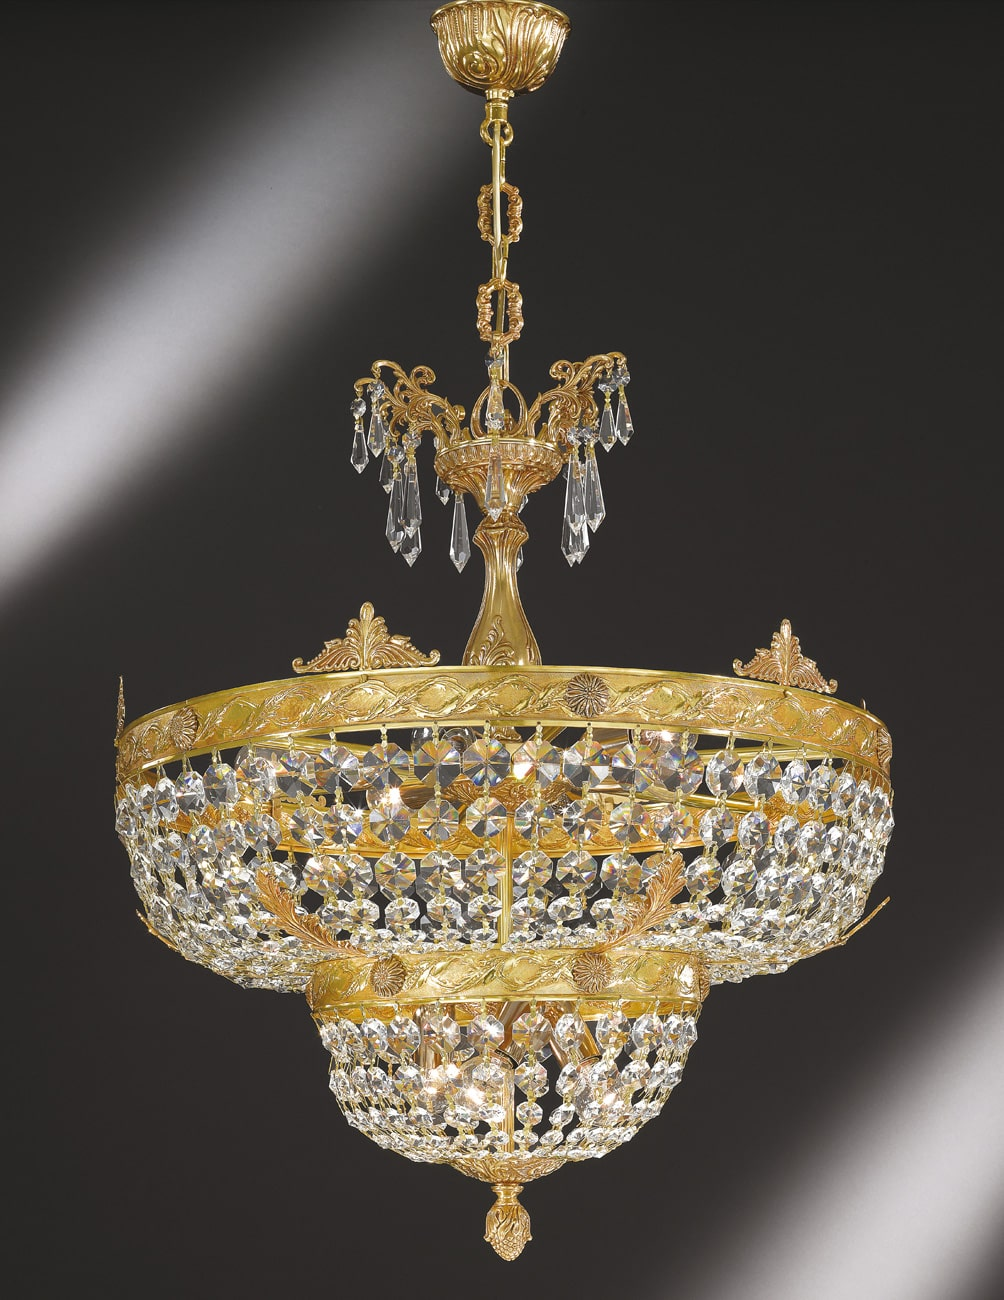 decorative lighting chandeliers 24